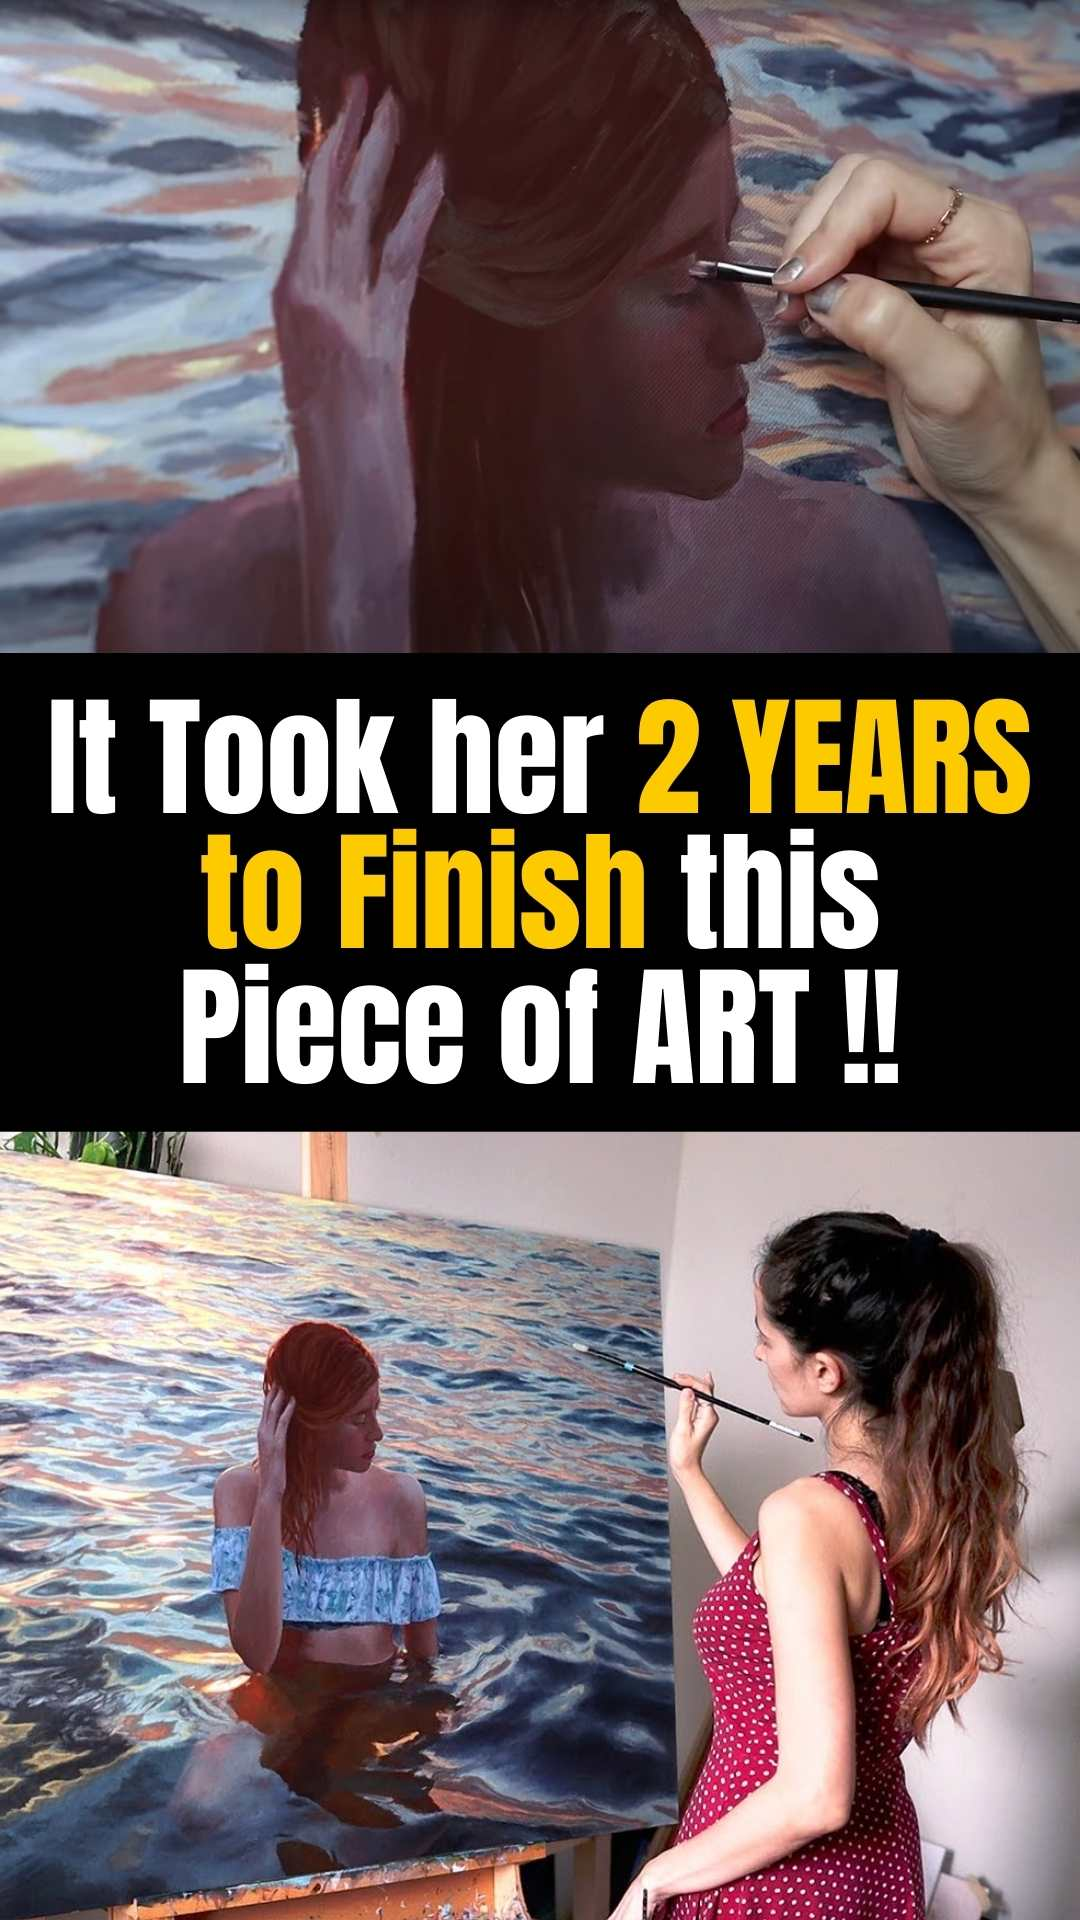 It Took her 2 YEARS to Finish this Piece of ART !!